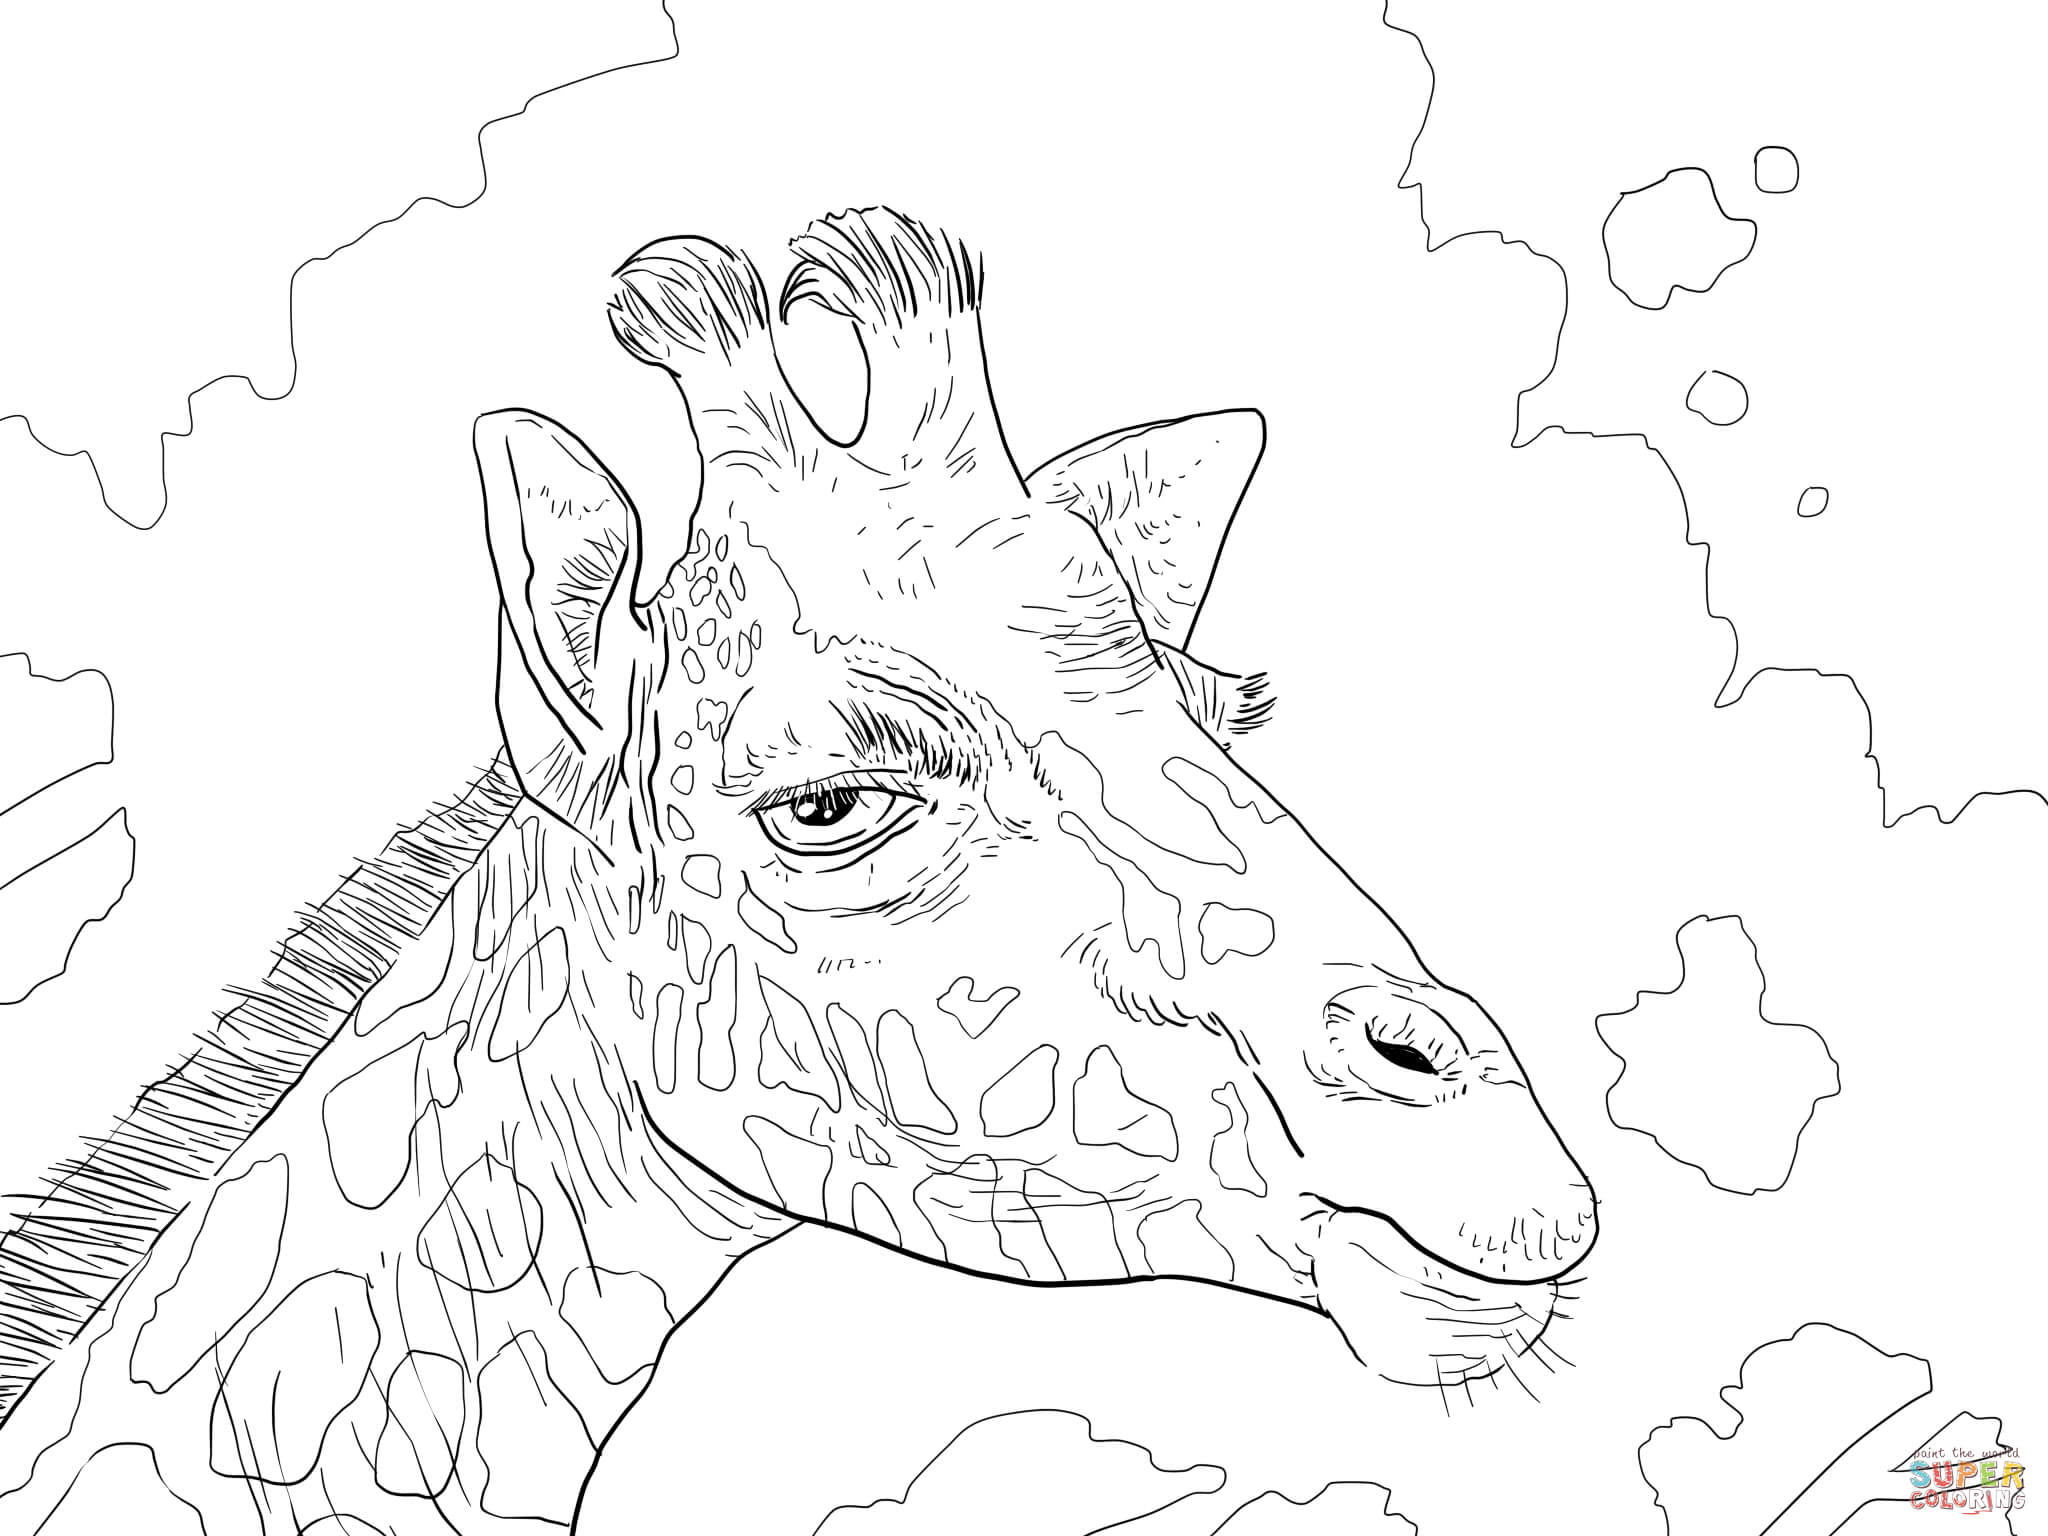 2048x1536 Rothschild Giraffe Head Coloring Page At Giraffe Coloring Pages